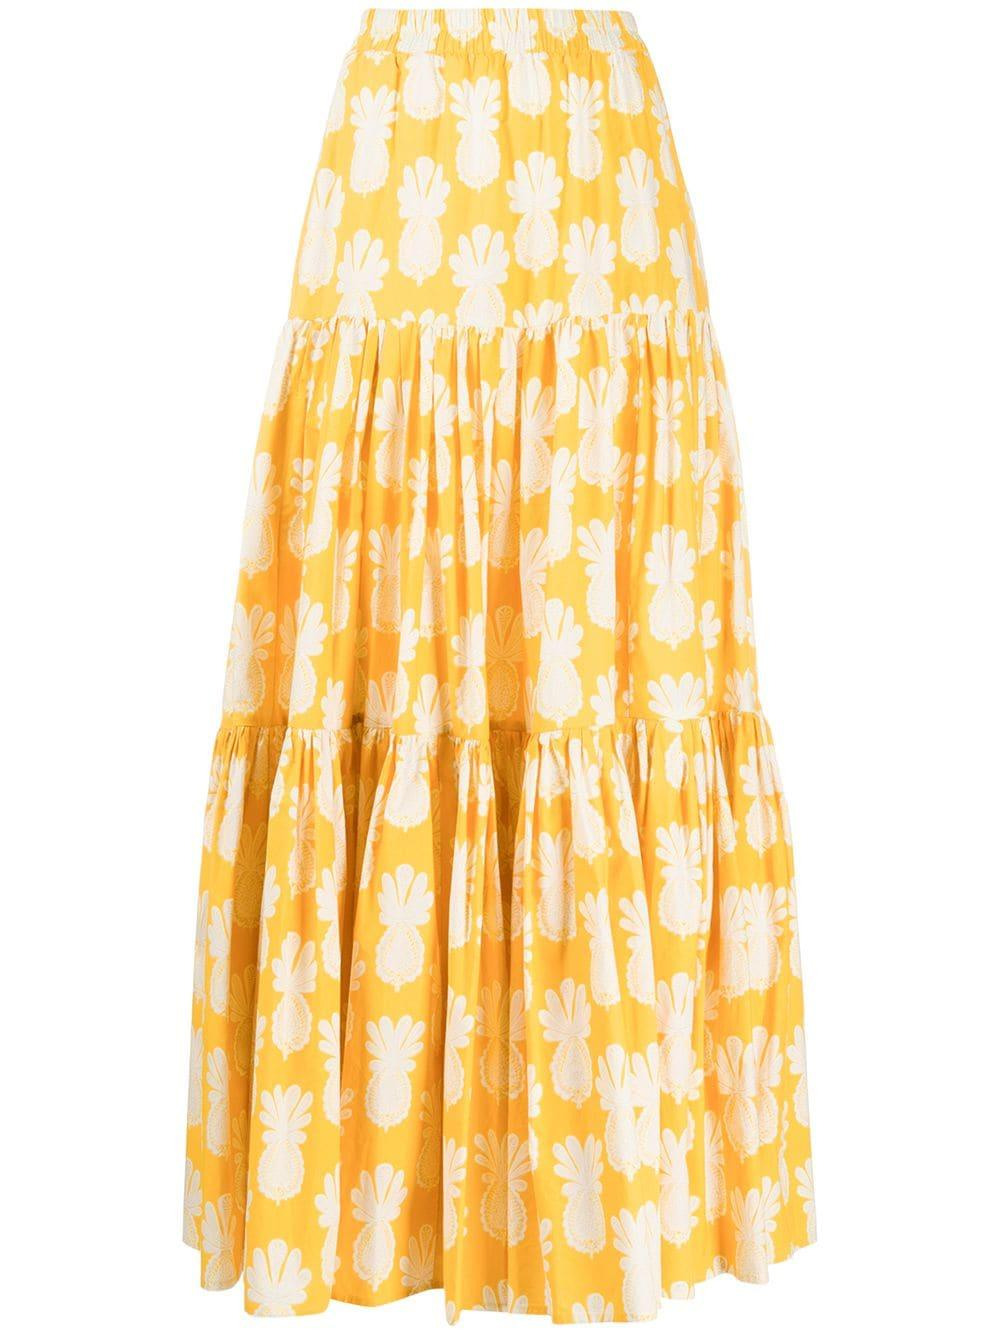 Printed Cotton Tiered Maxi Skirt Item # SKI0001-COT001-S20